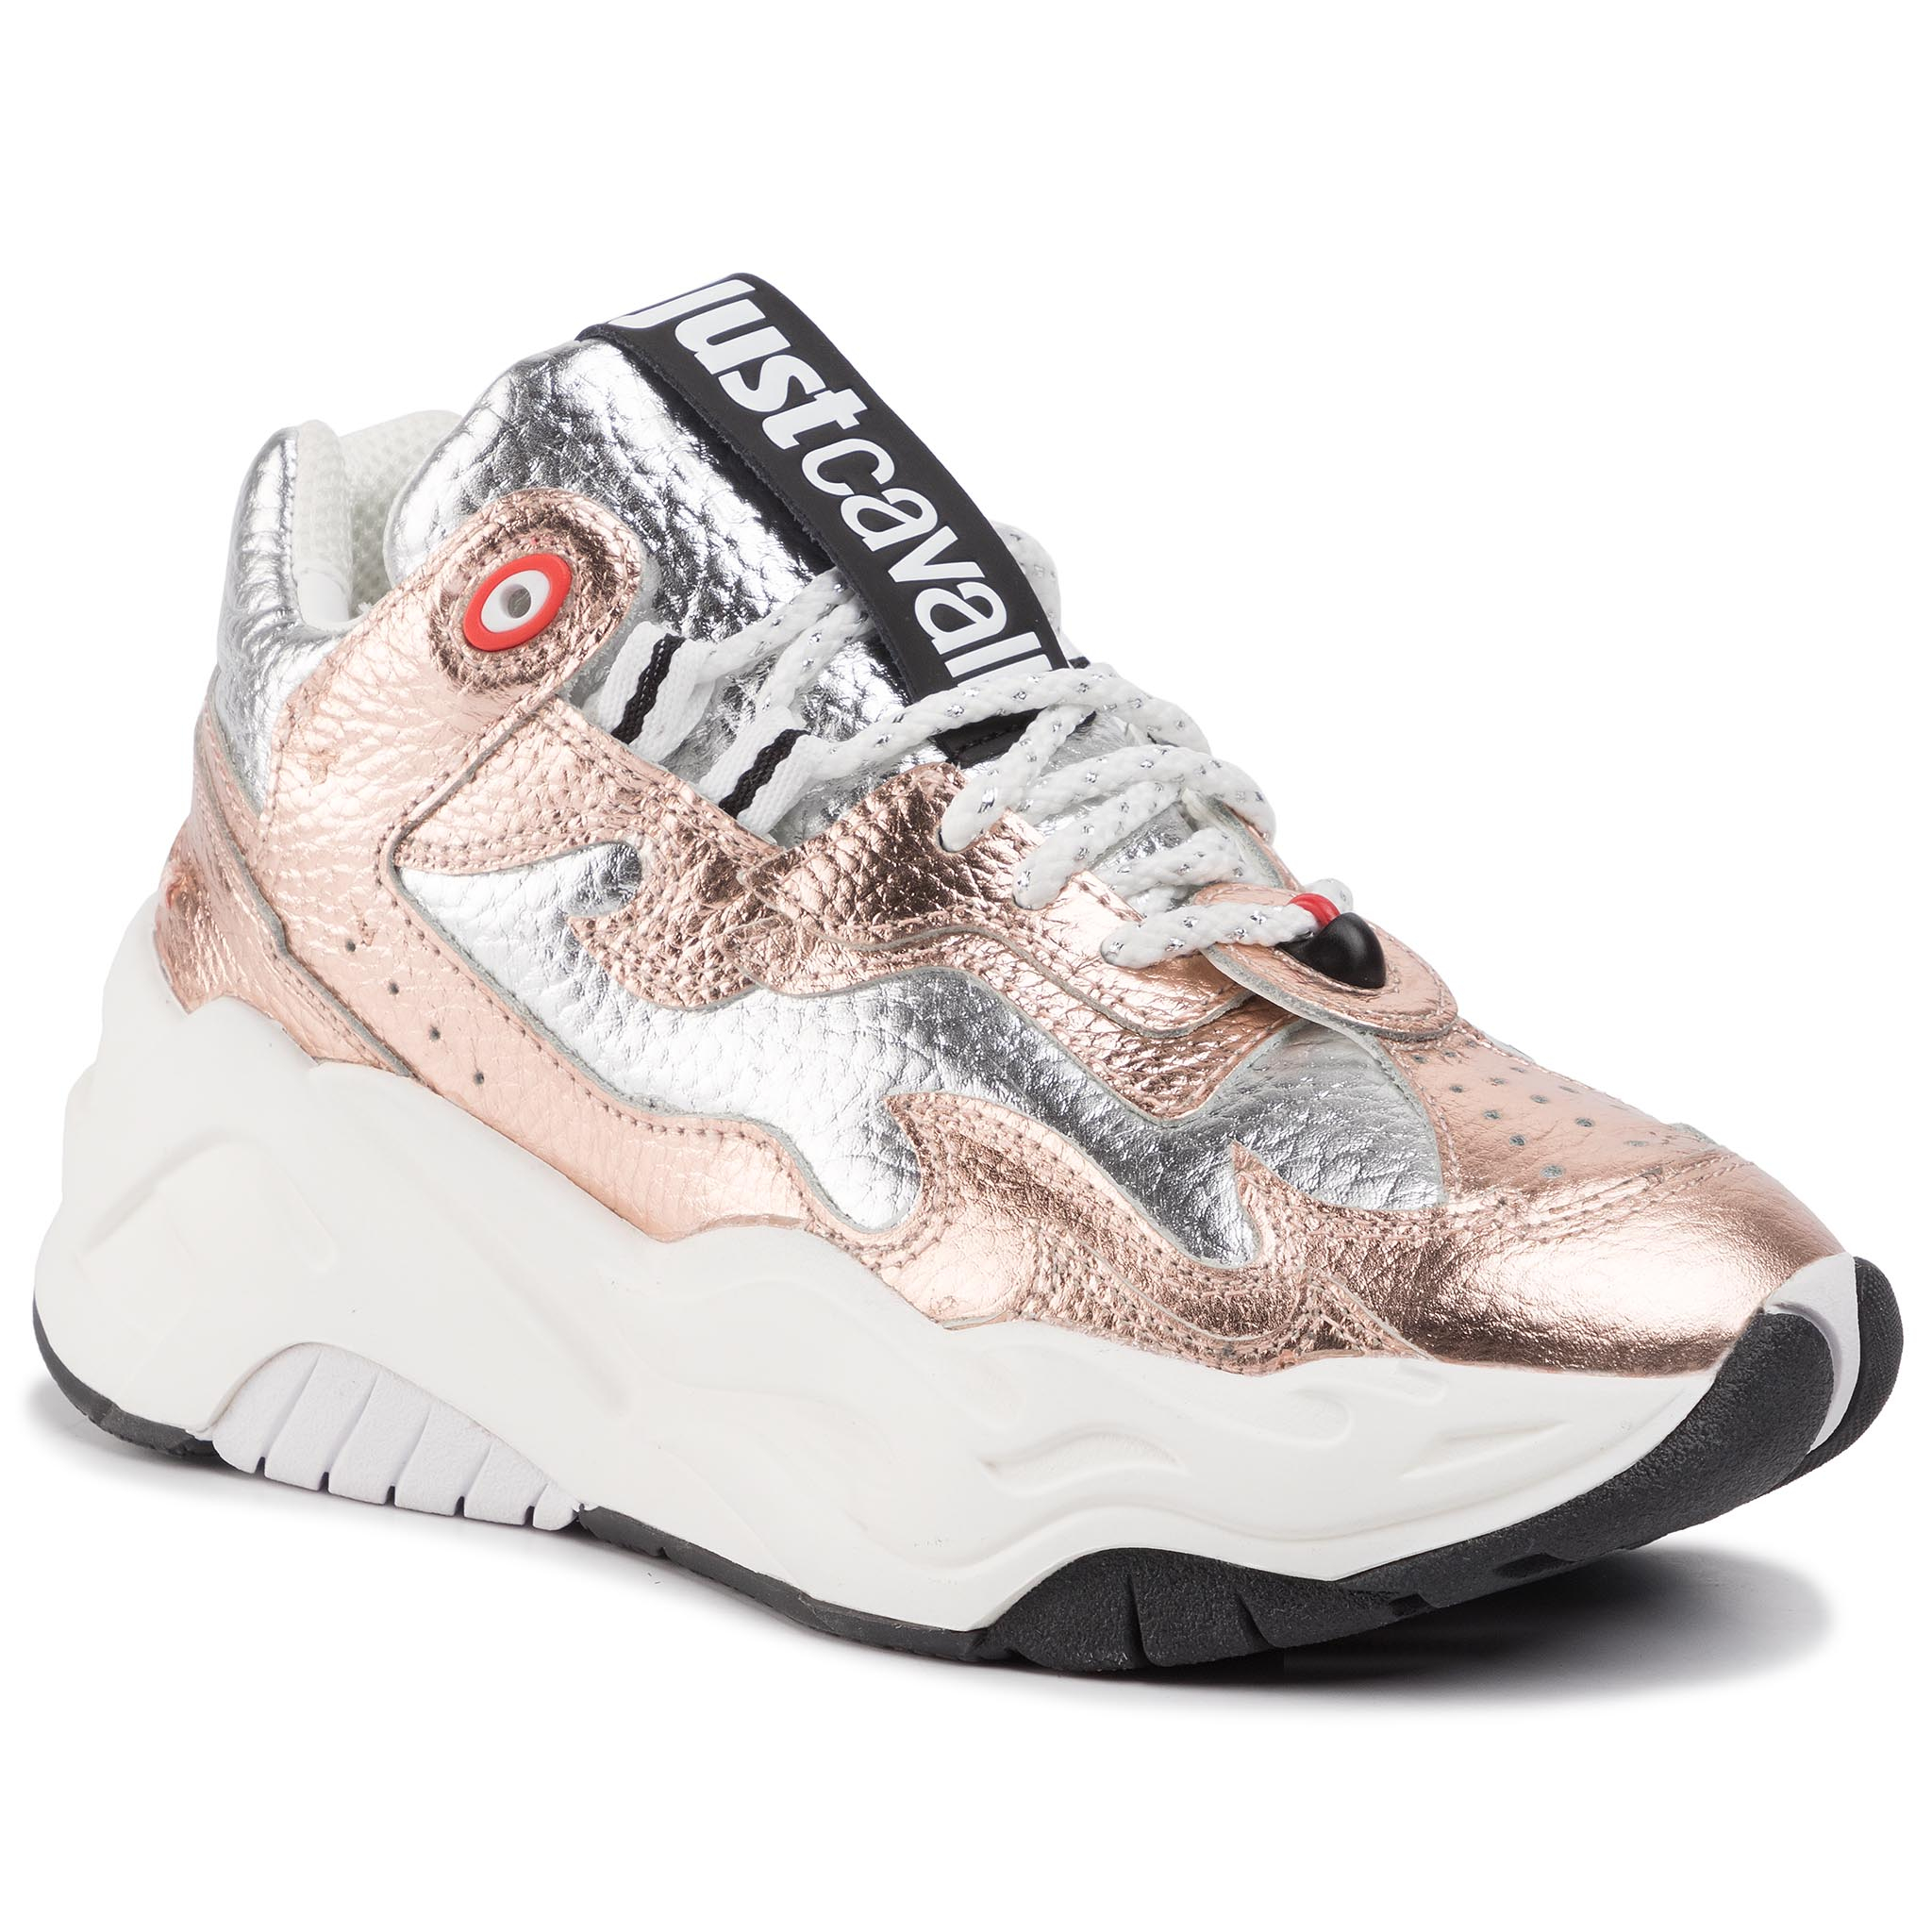 Sneakers JUST CAVALLI - S09WS0074 962